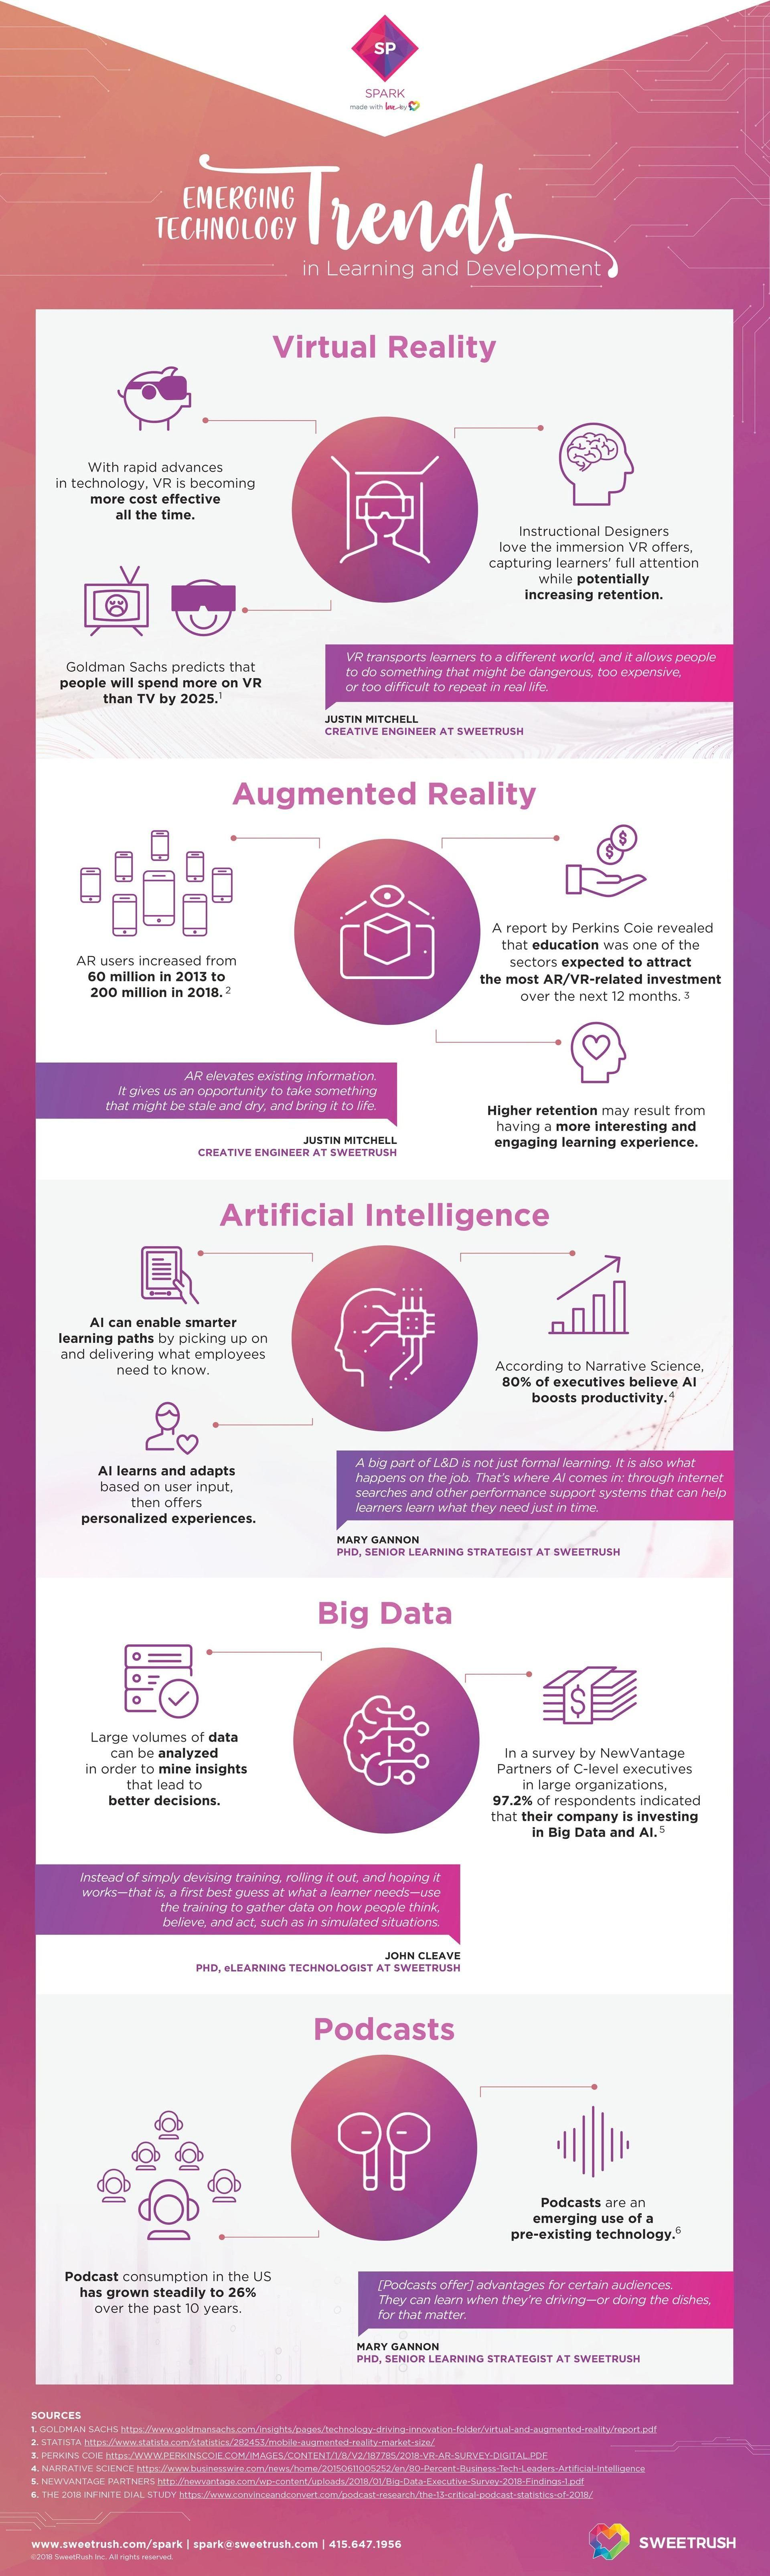 INFOGRAPHIC: Emerging Technology Trends Influencing The L&D Field